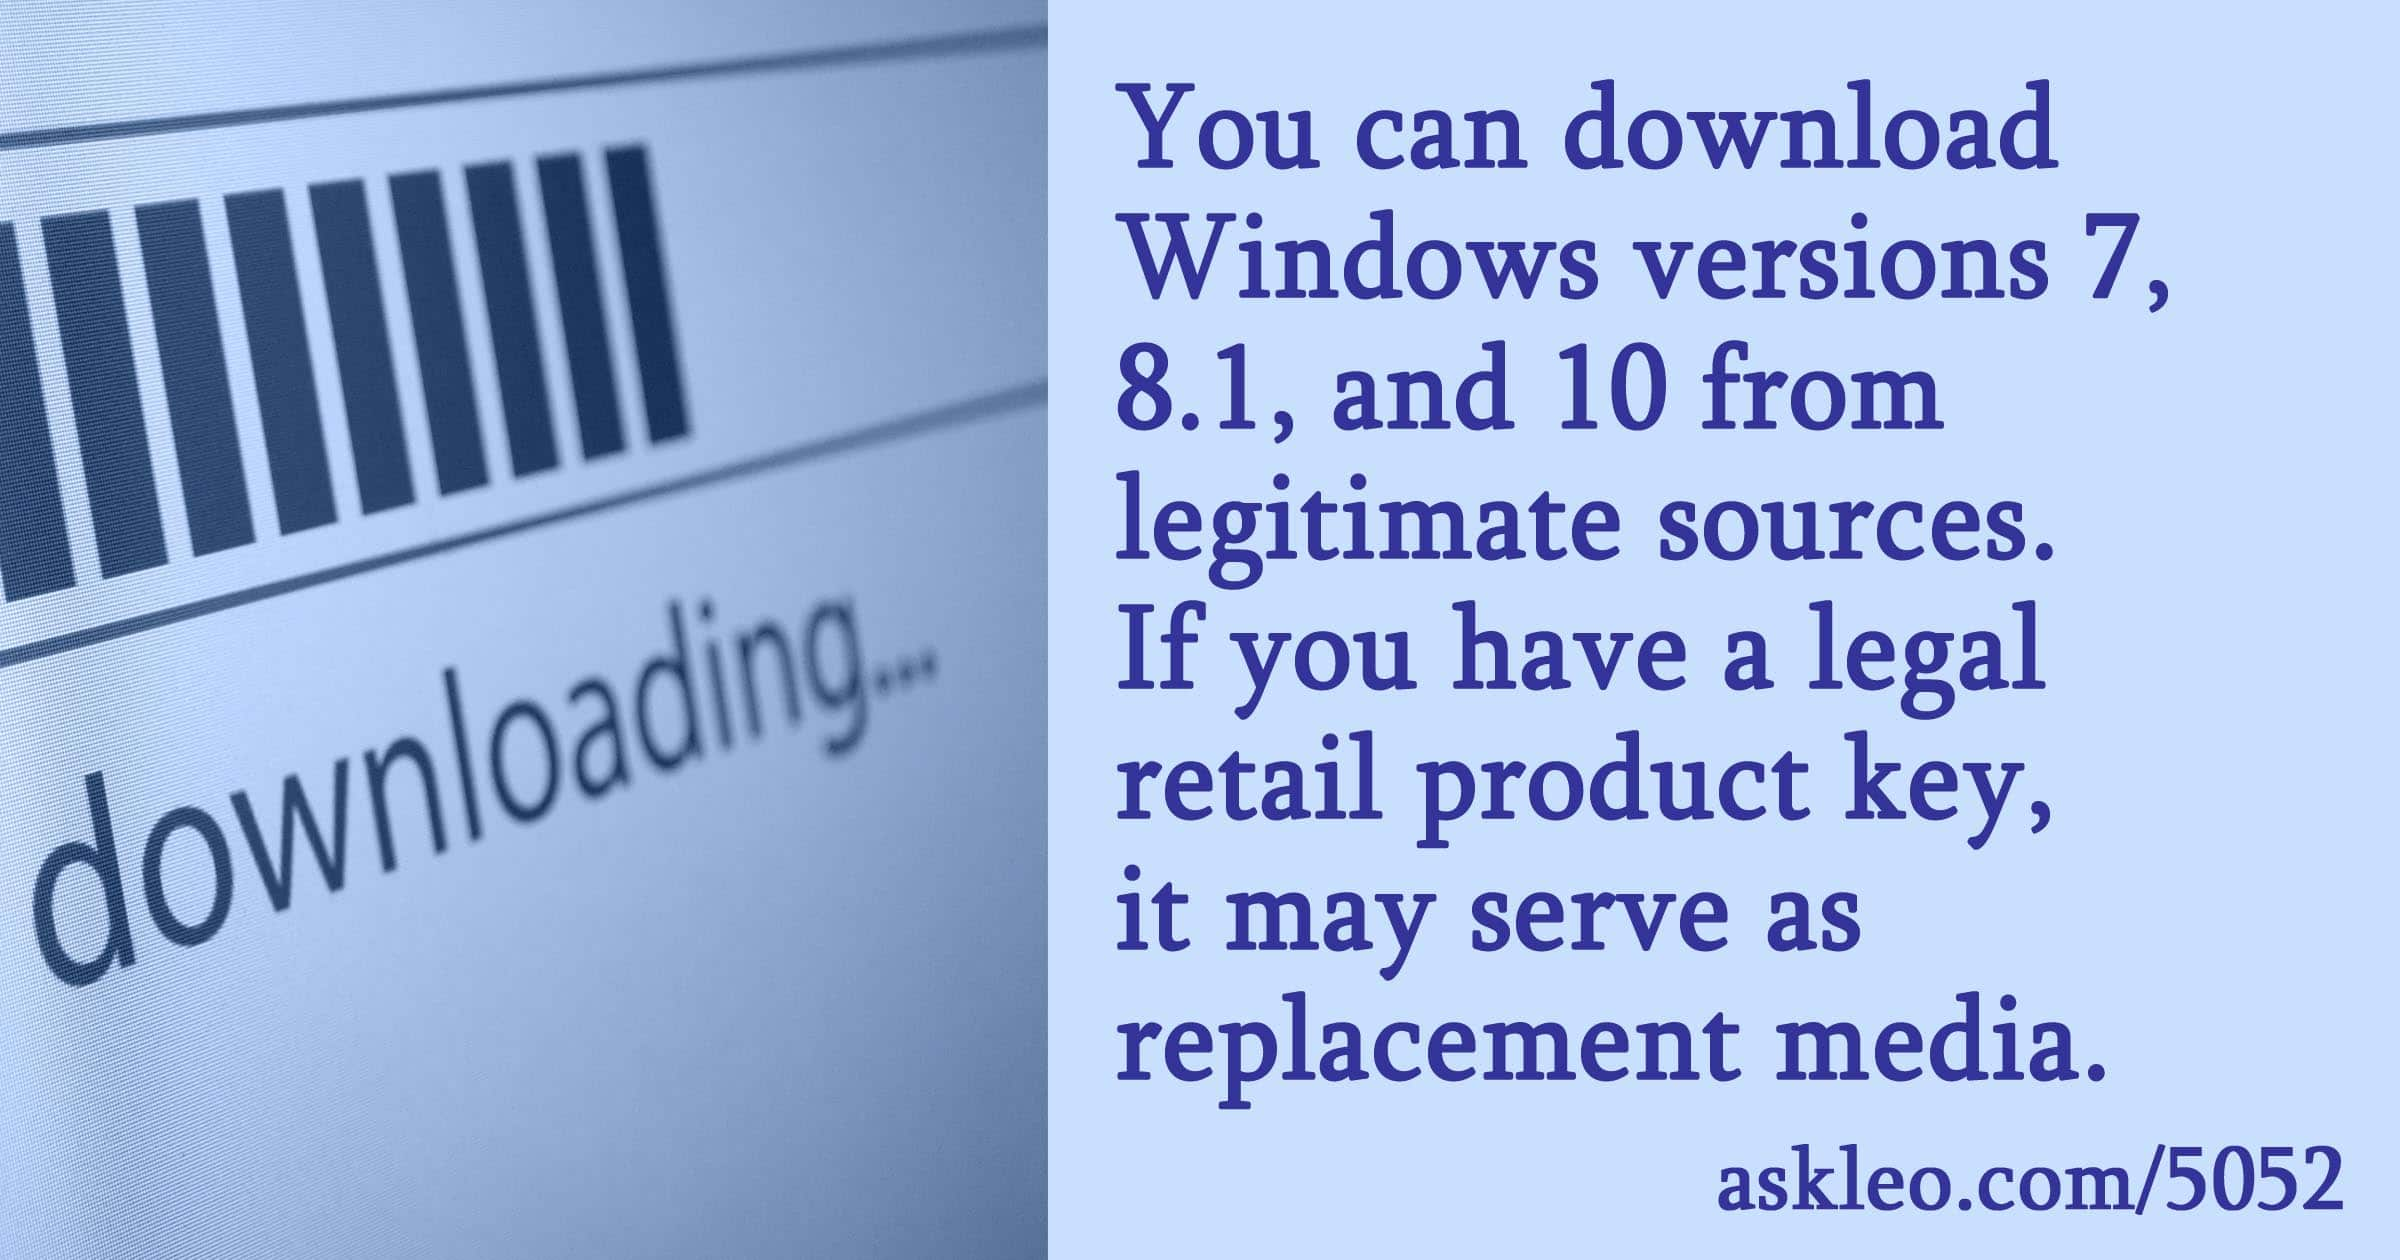 Where can I download Windows?